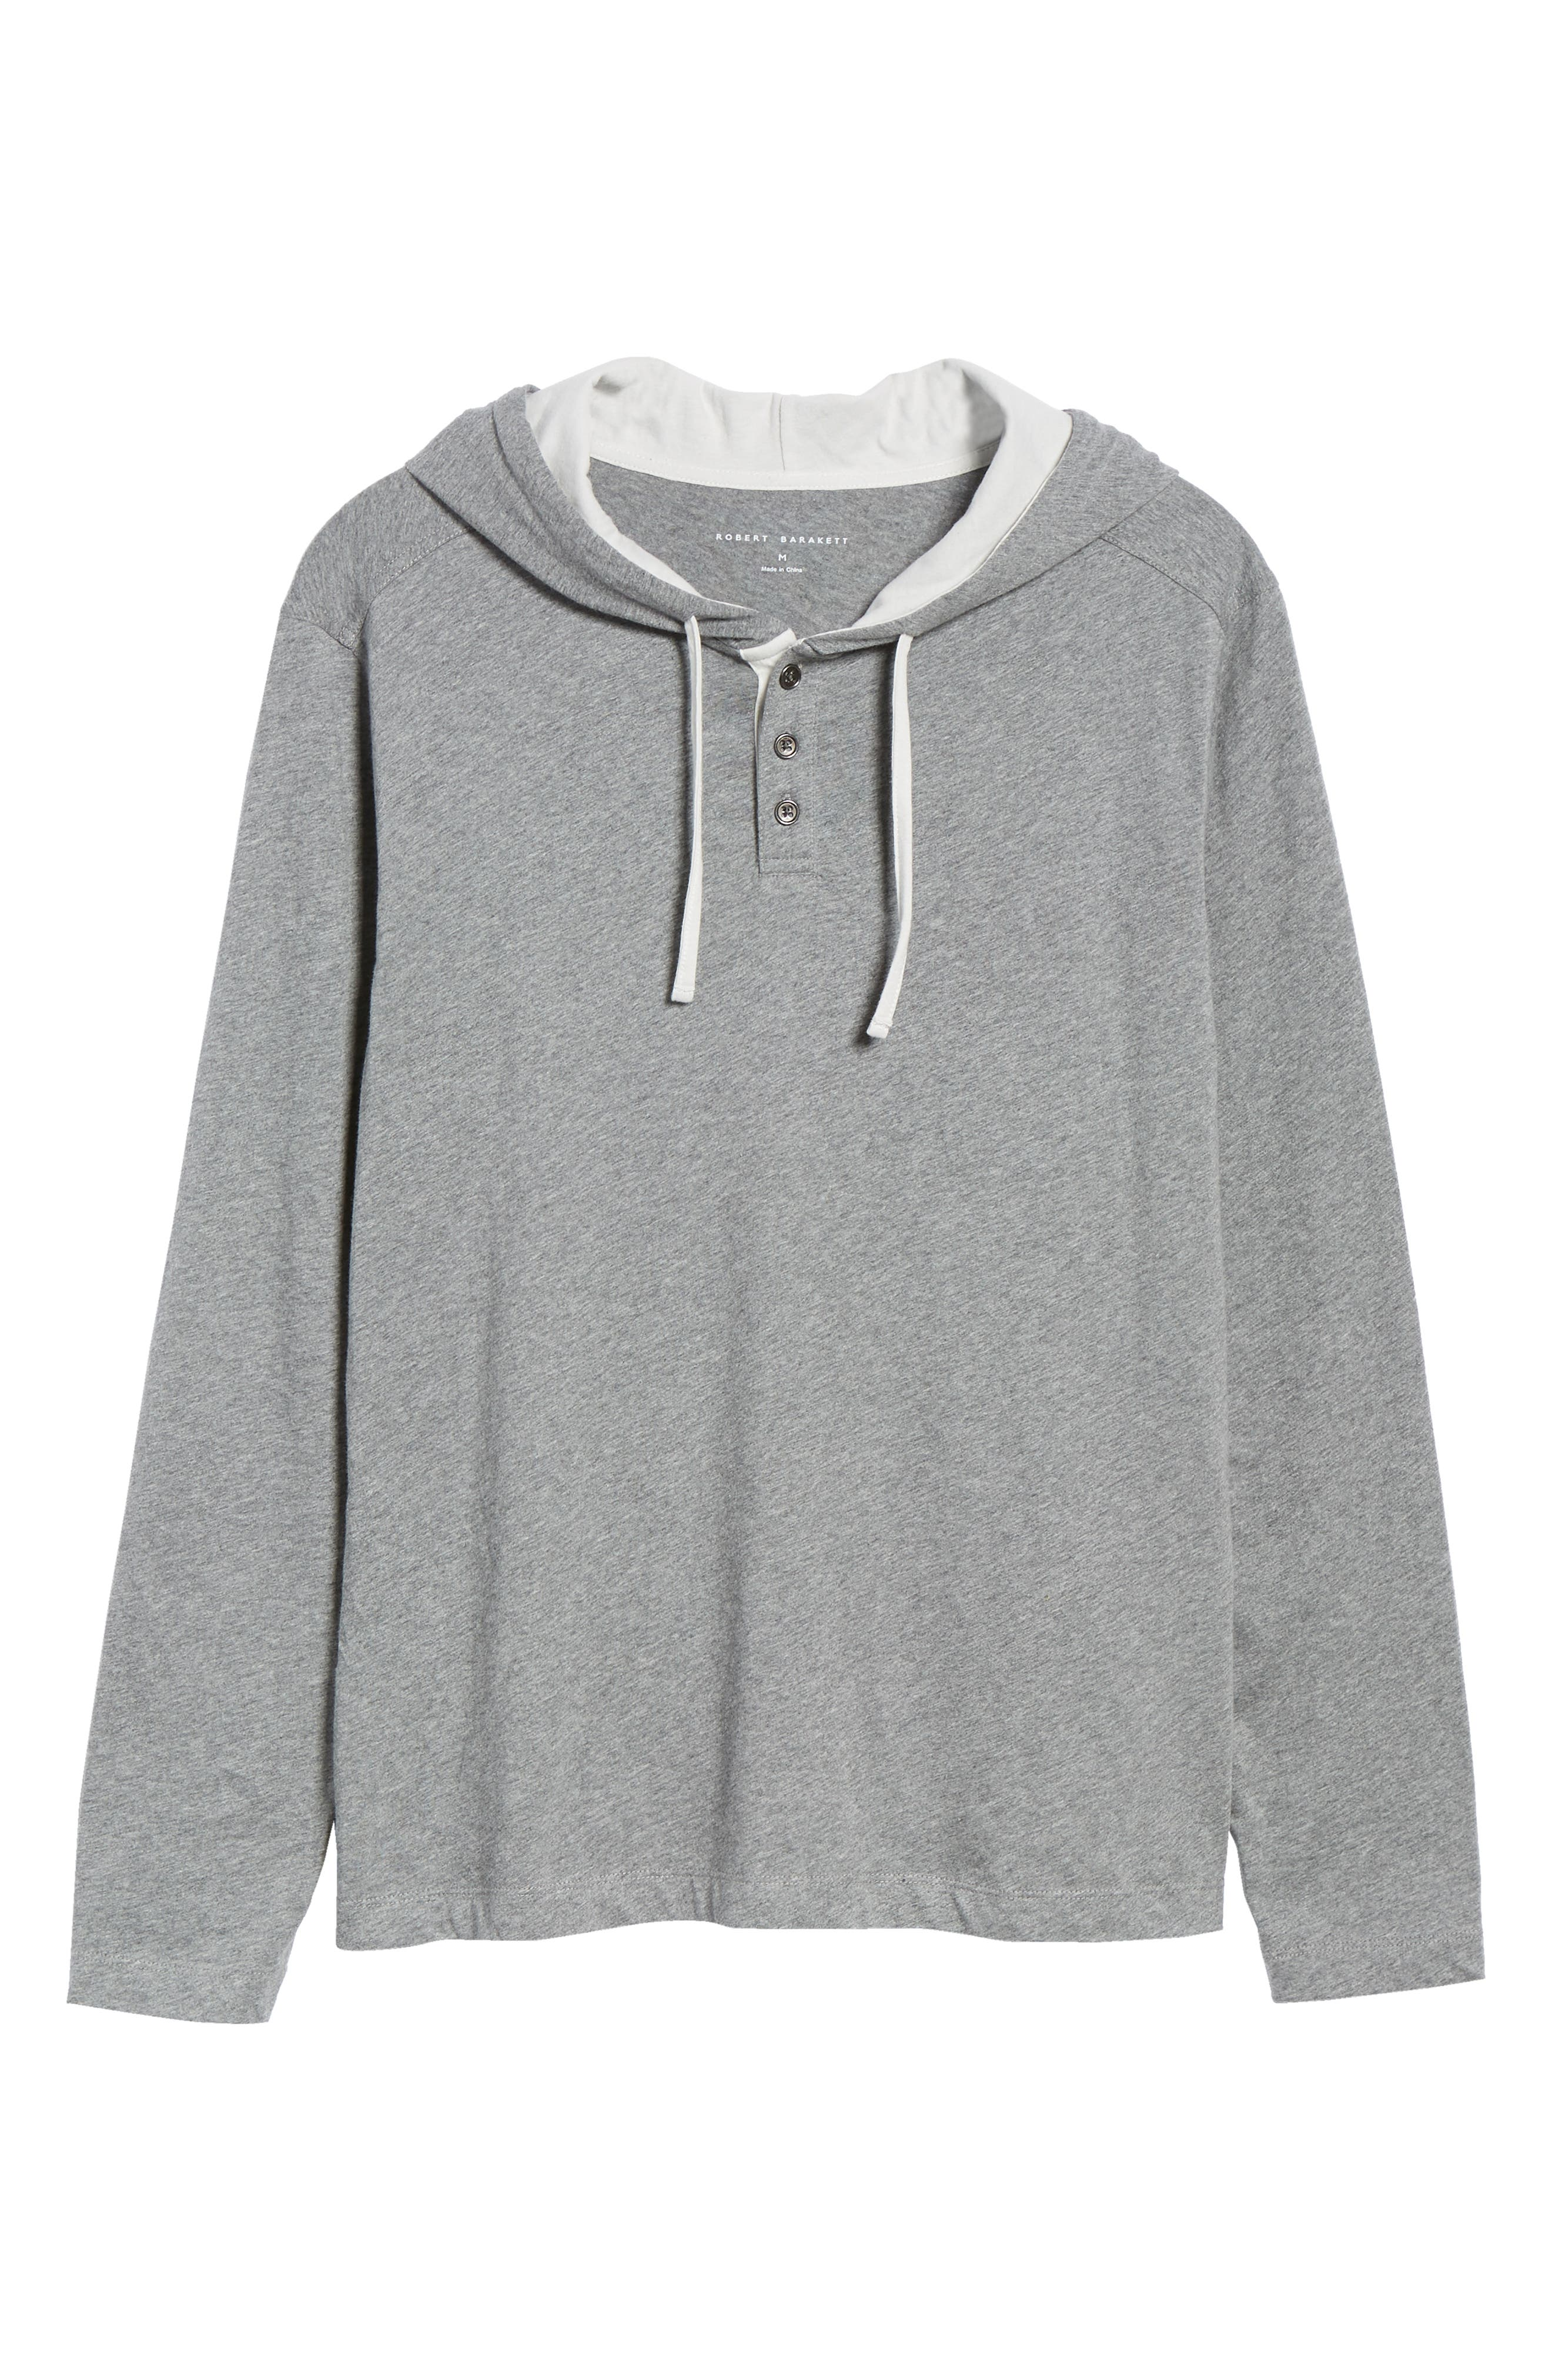 Carl Pullover Hoodie,                             Alternate thumbnail 6, color,                             MID GREY